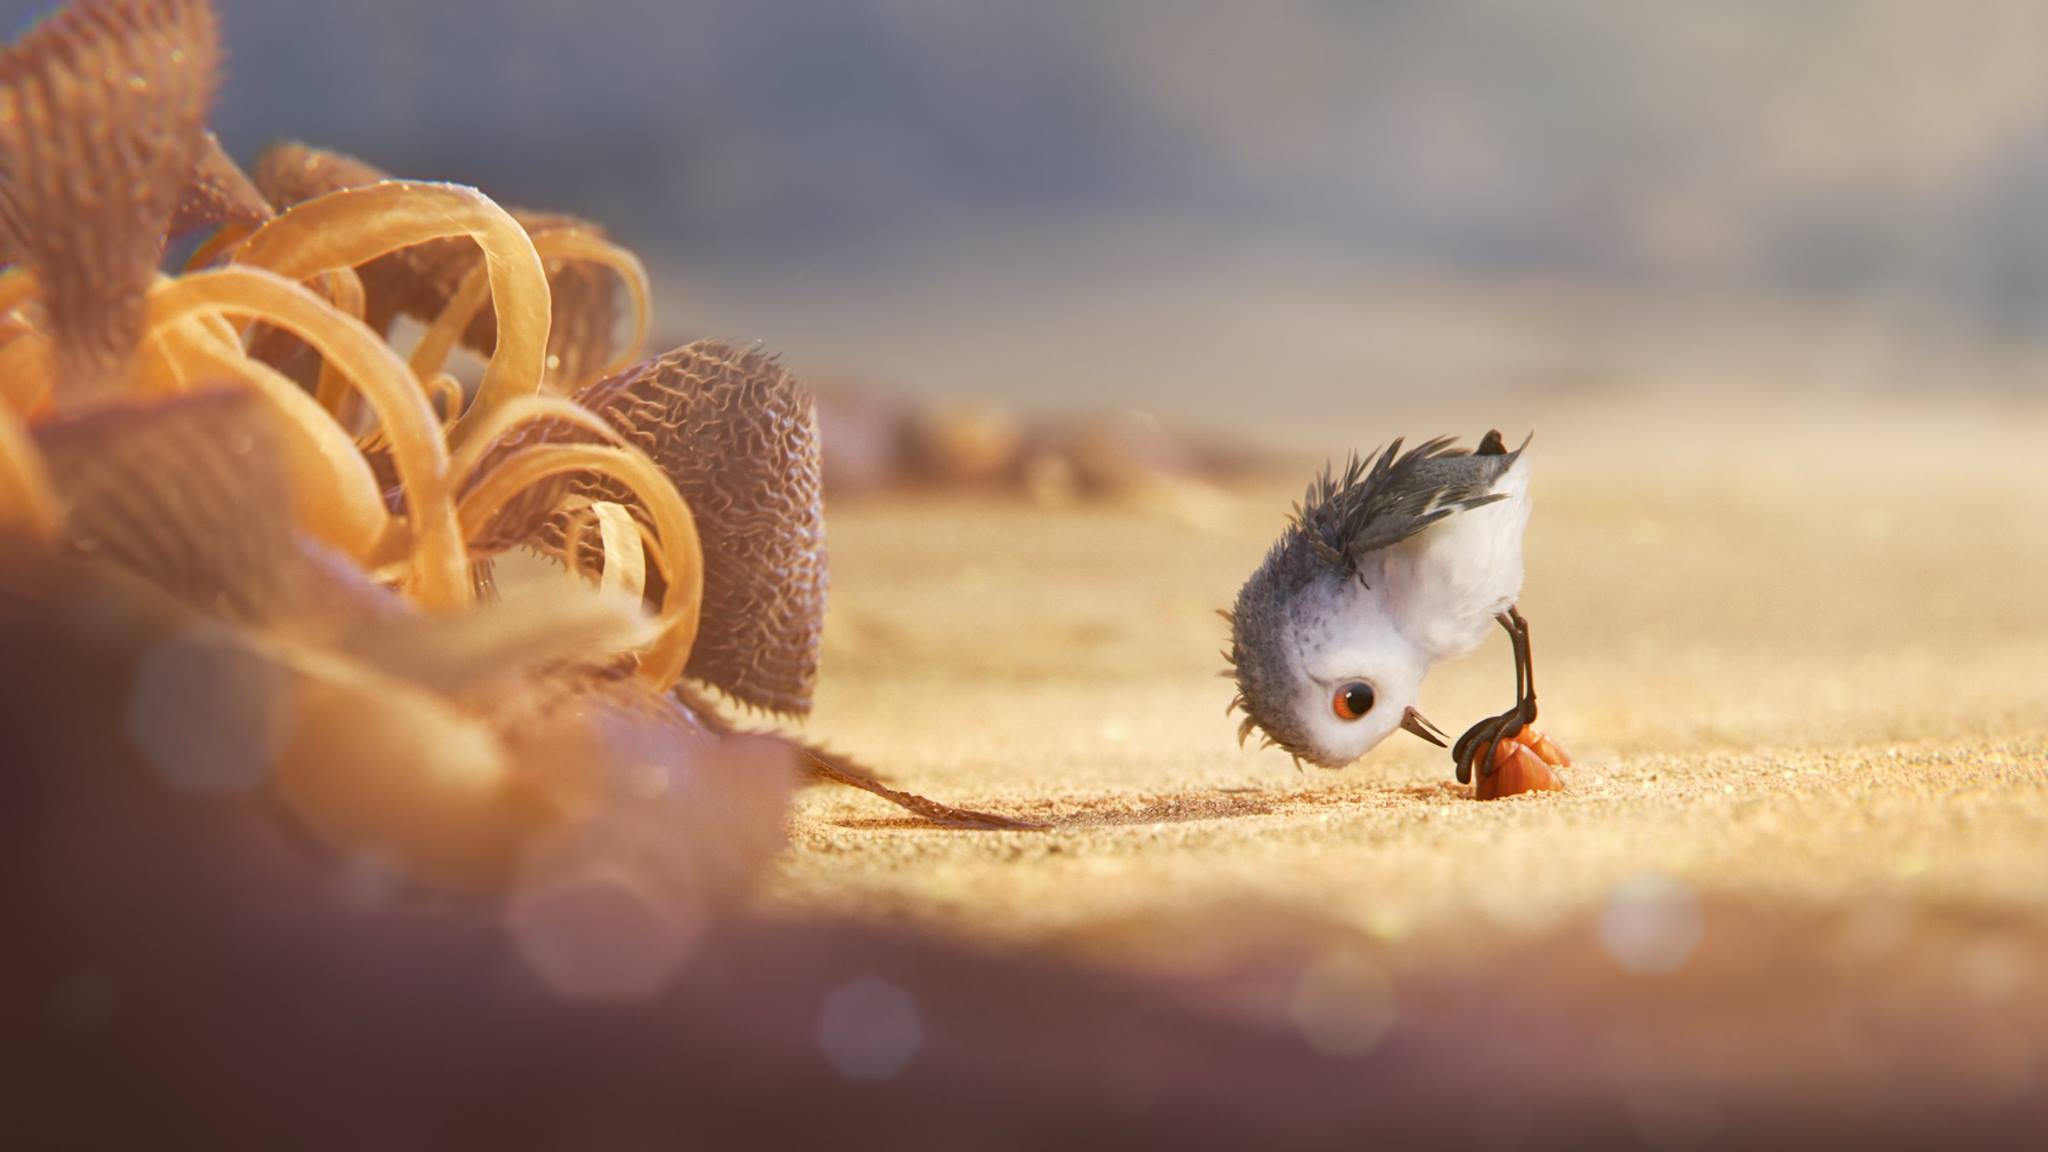 PIPER Pixar Short